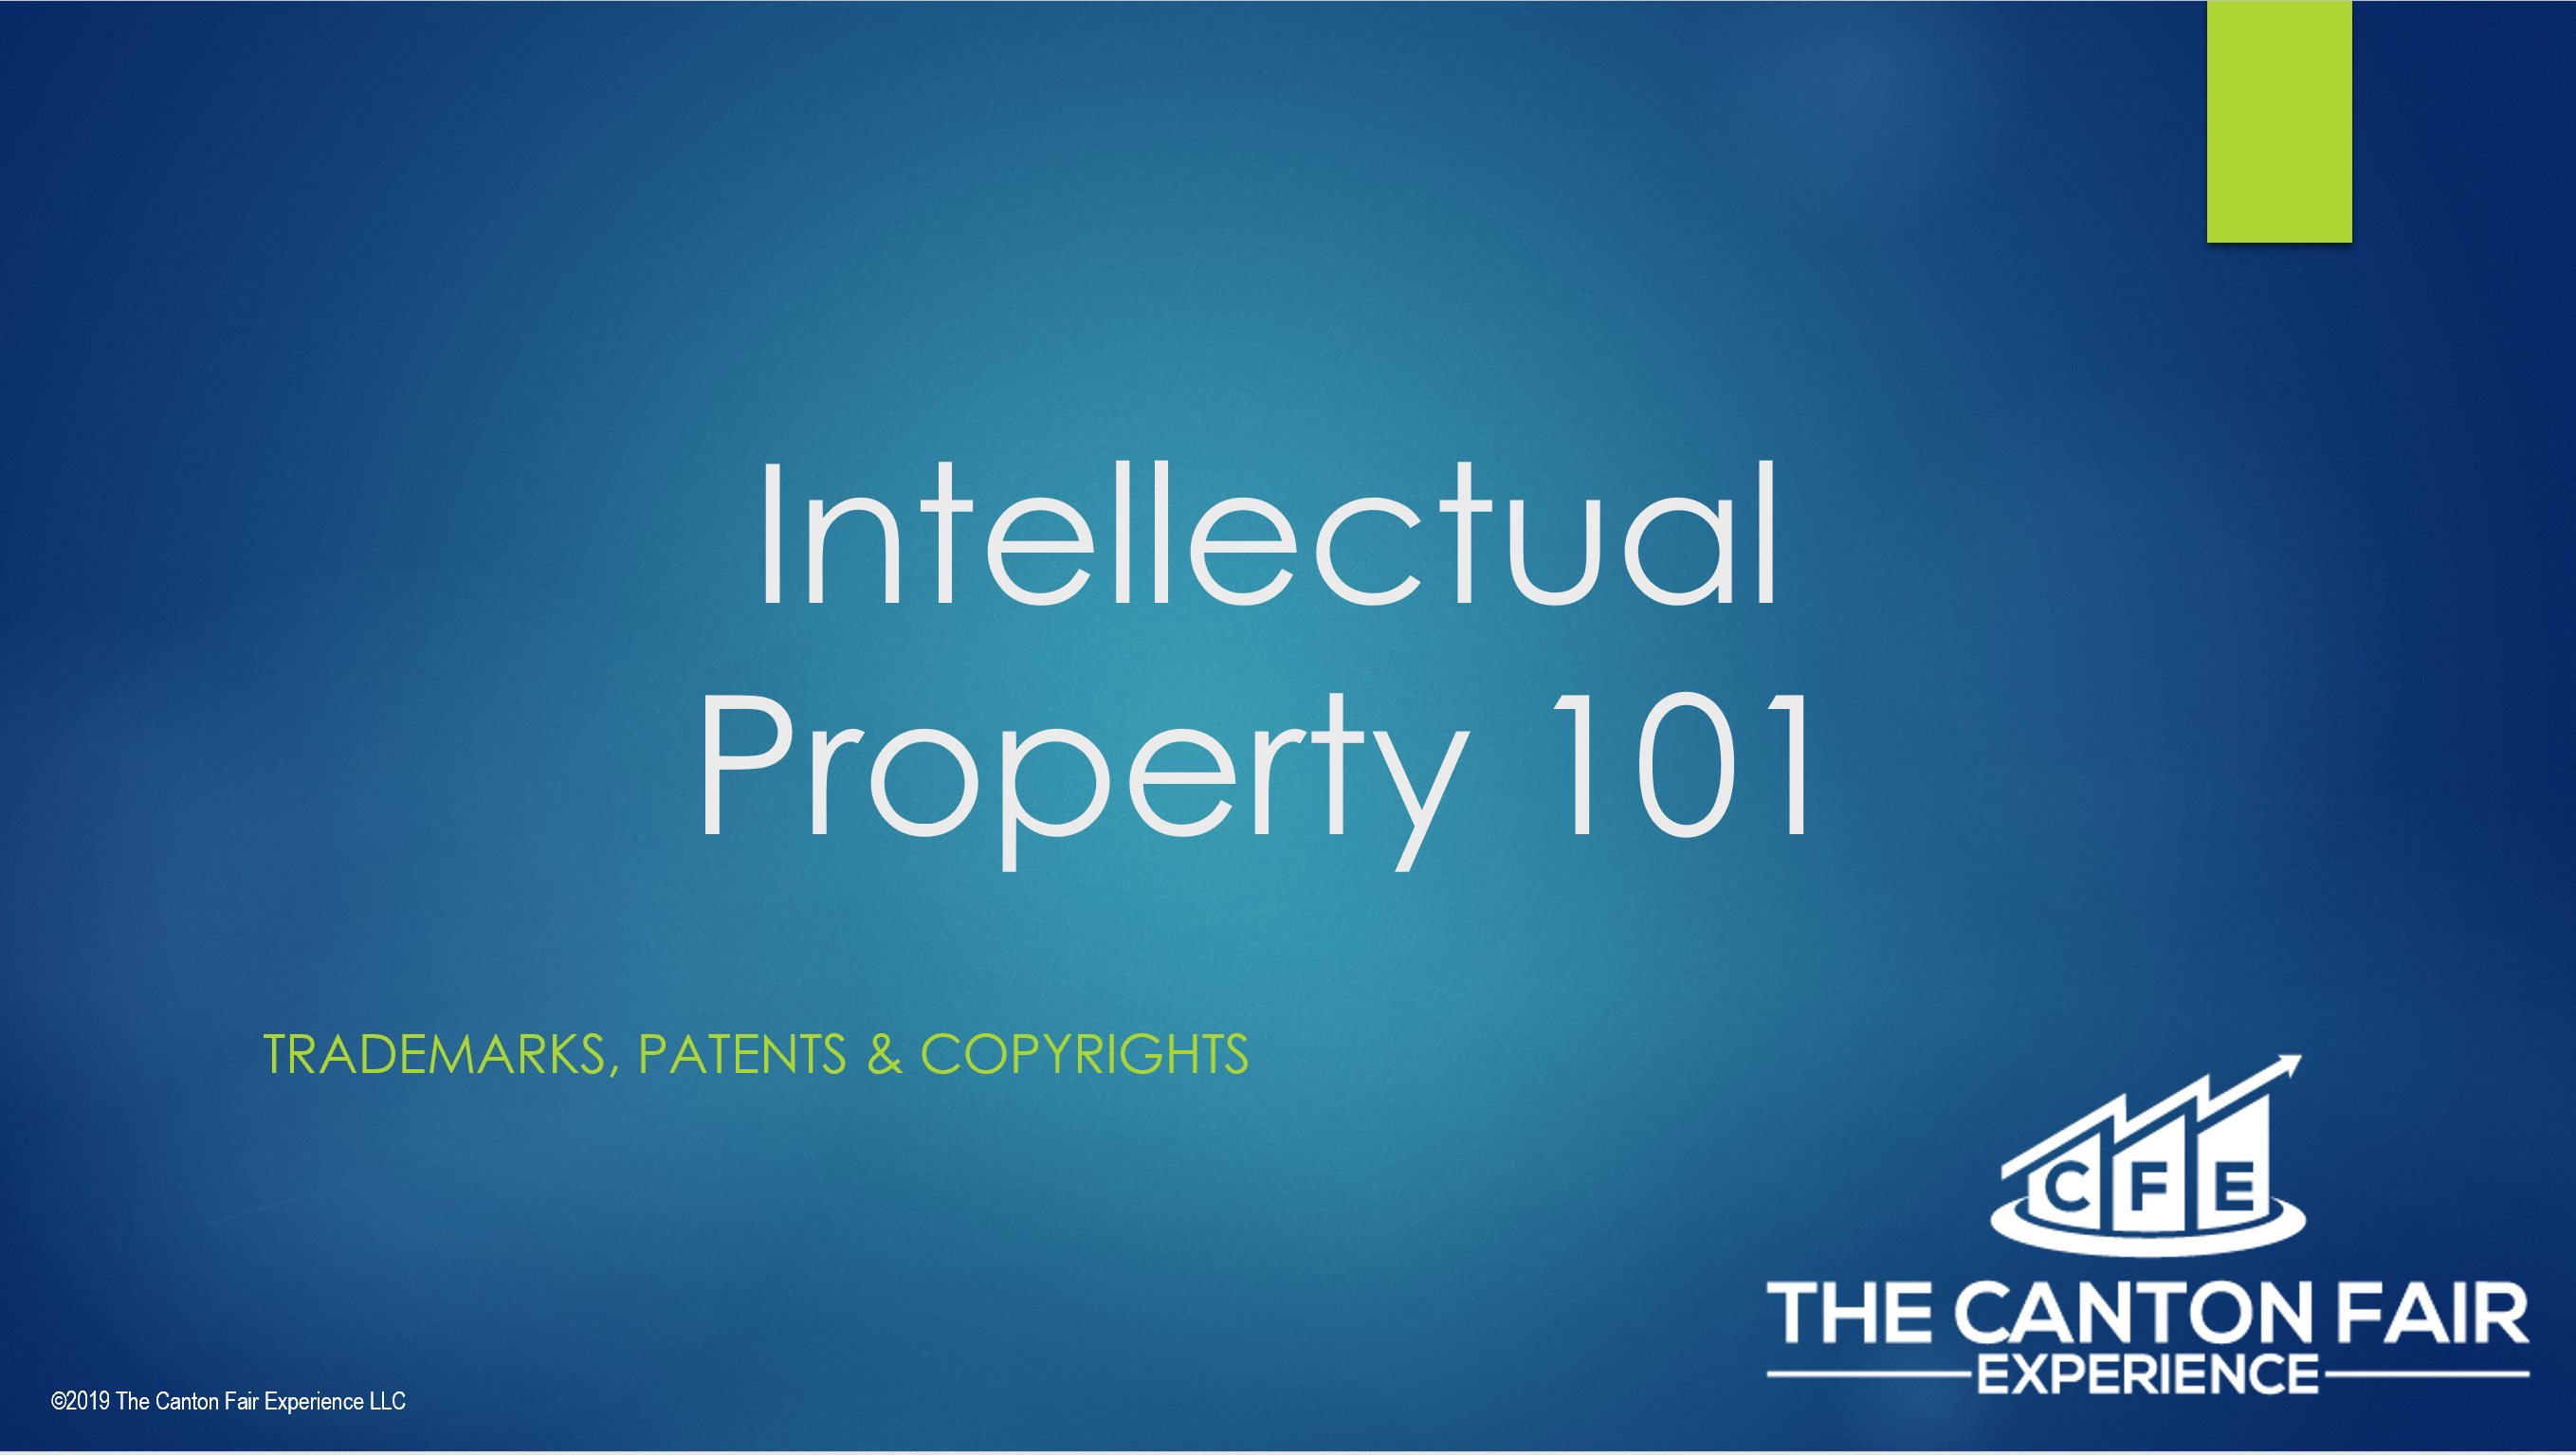 Understanding Patents, Trademarks, Copyrights, and Intellectual Property